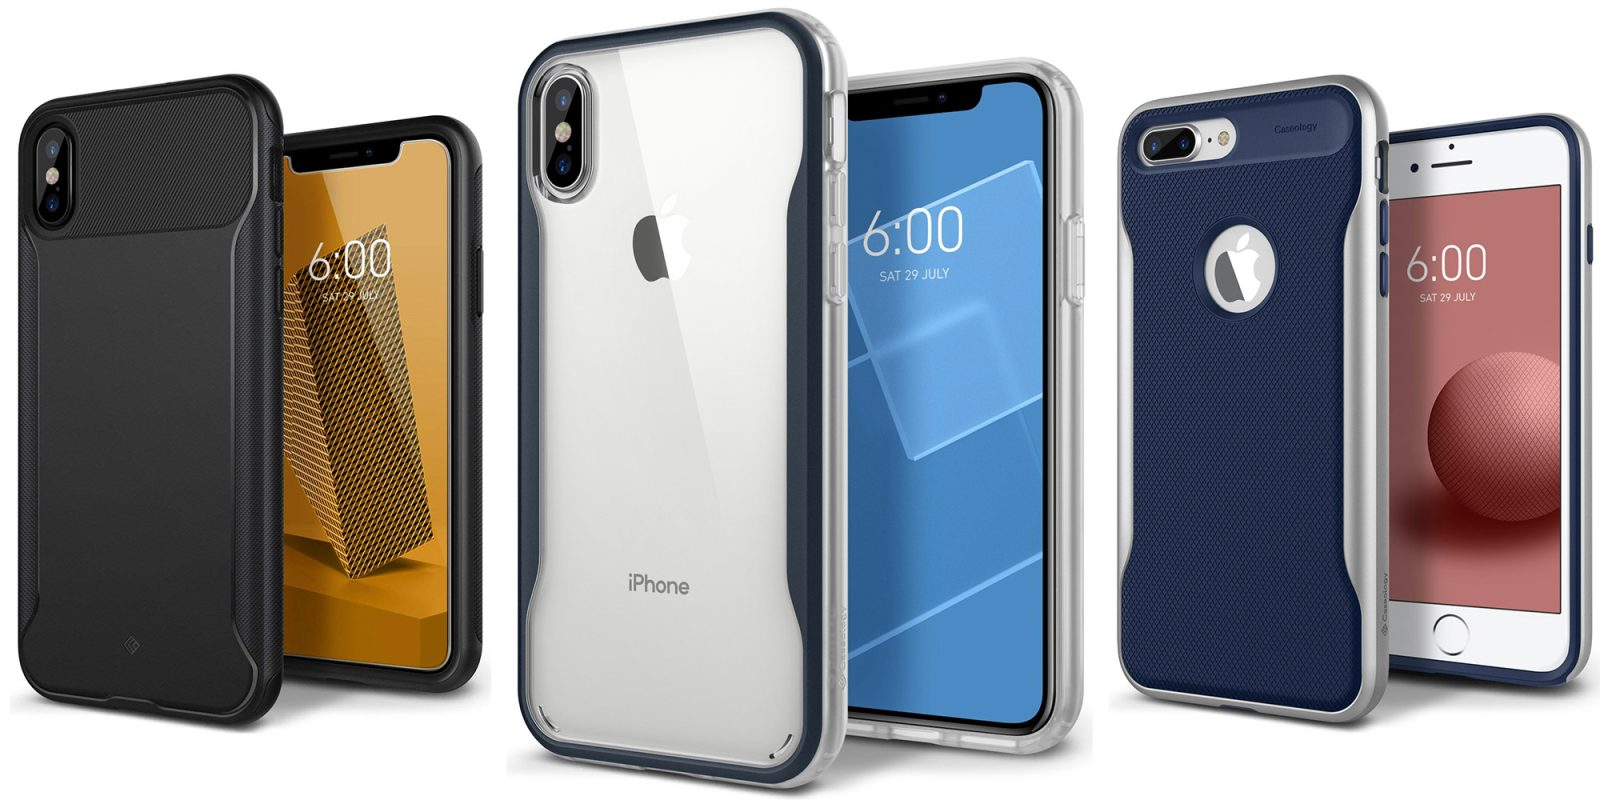 designer fashion 8f6f0 3e339 Give your iPhone X or 8/Plus a new case from $4 at Amazon - 9to5Toys